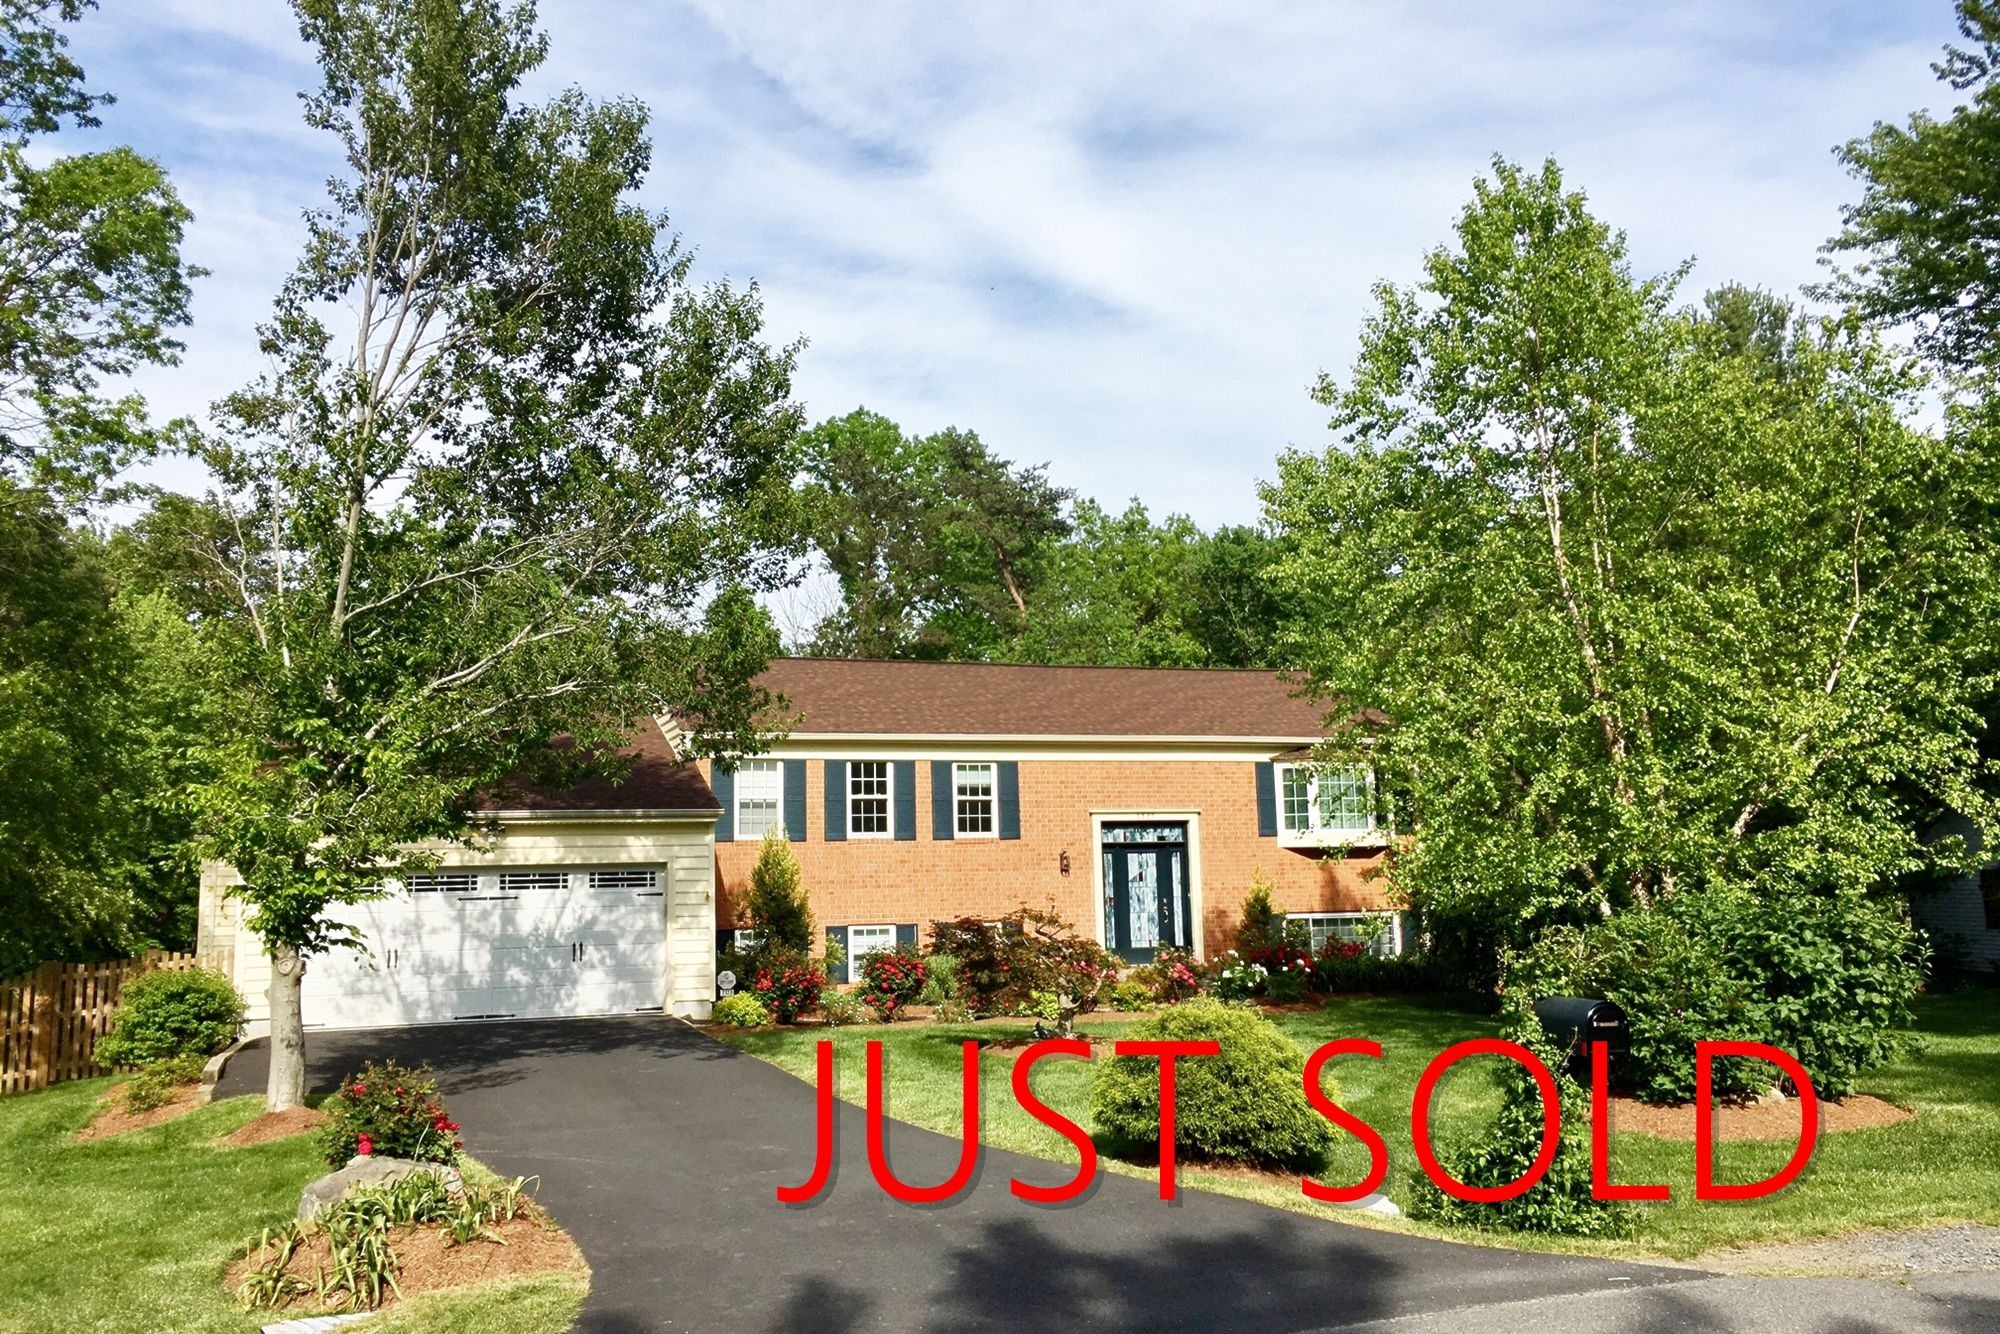 Congratulations to Rob Chevez for helping our Seller settle on 2327 Bedfordshire Circle, Reston, VA 20191. Become a CAZA Smart Seller and sell your home for 3.1% more than the market average in 1/2 the time! Go to www.thecazagroup.com to learn about our Smart Seller System. #CAZAhomes #CAZAsmartsystem #CAZAravingfans